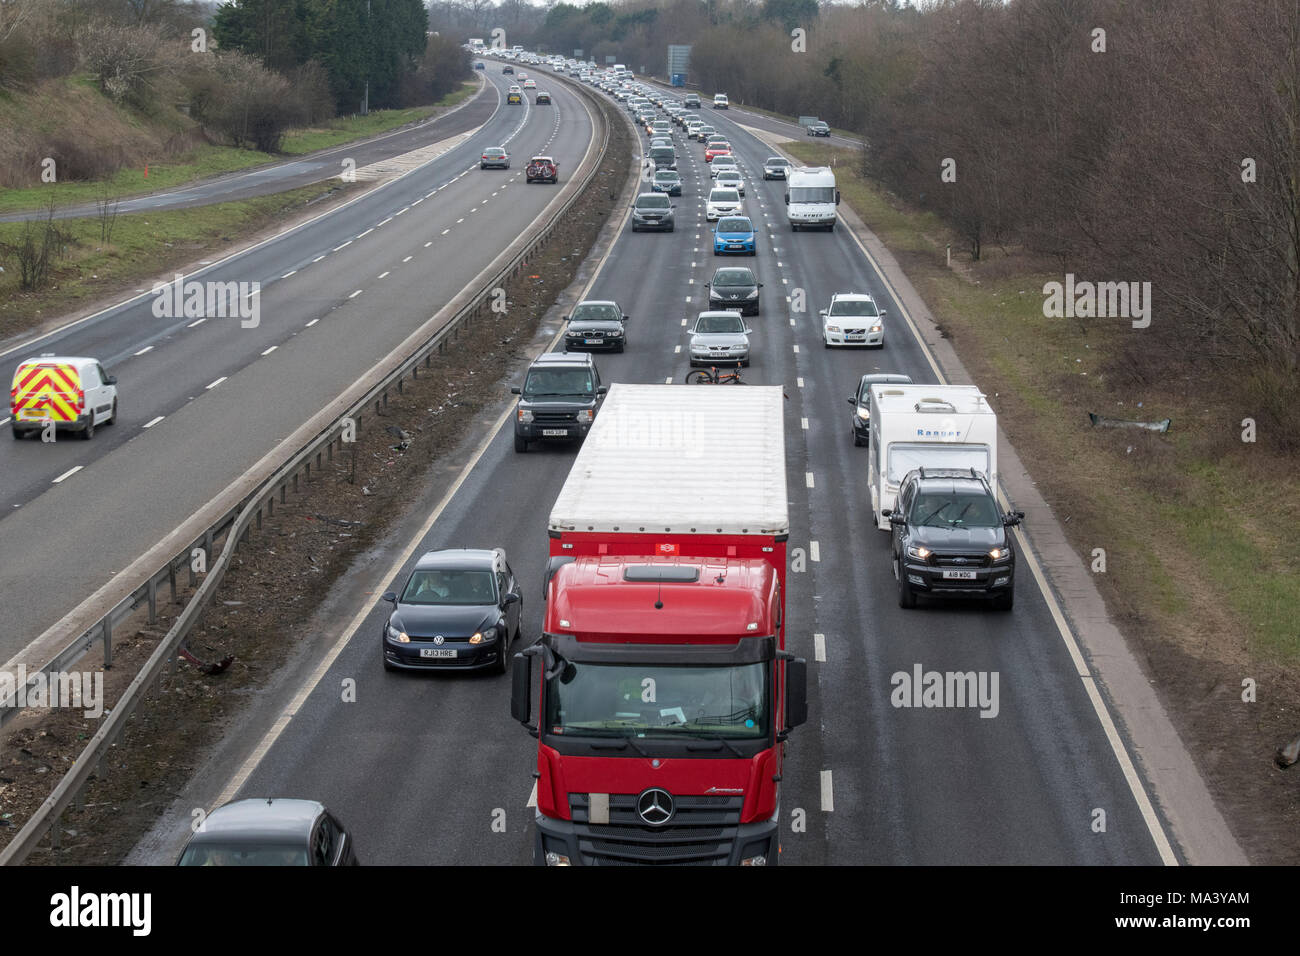 Newmarket, UK. 30th March, 2018. Heavy and slow traffic on the A14 for the start of Easter weekend on Good Friday morning. Newmarket bypass on the A14, eastbound. Credit: Jason Marsh/Alamy Live News - Stock Image